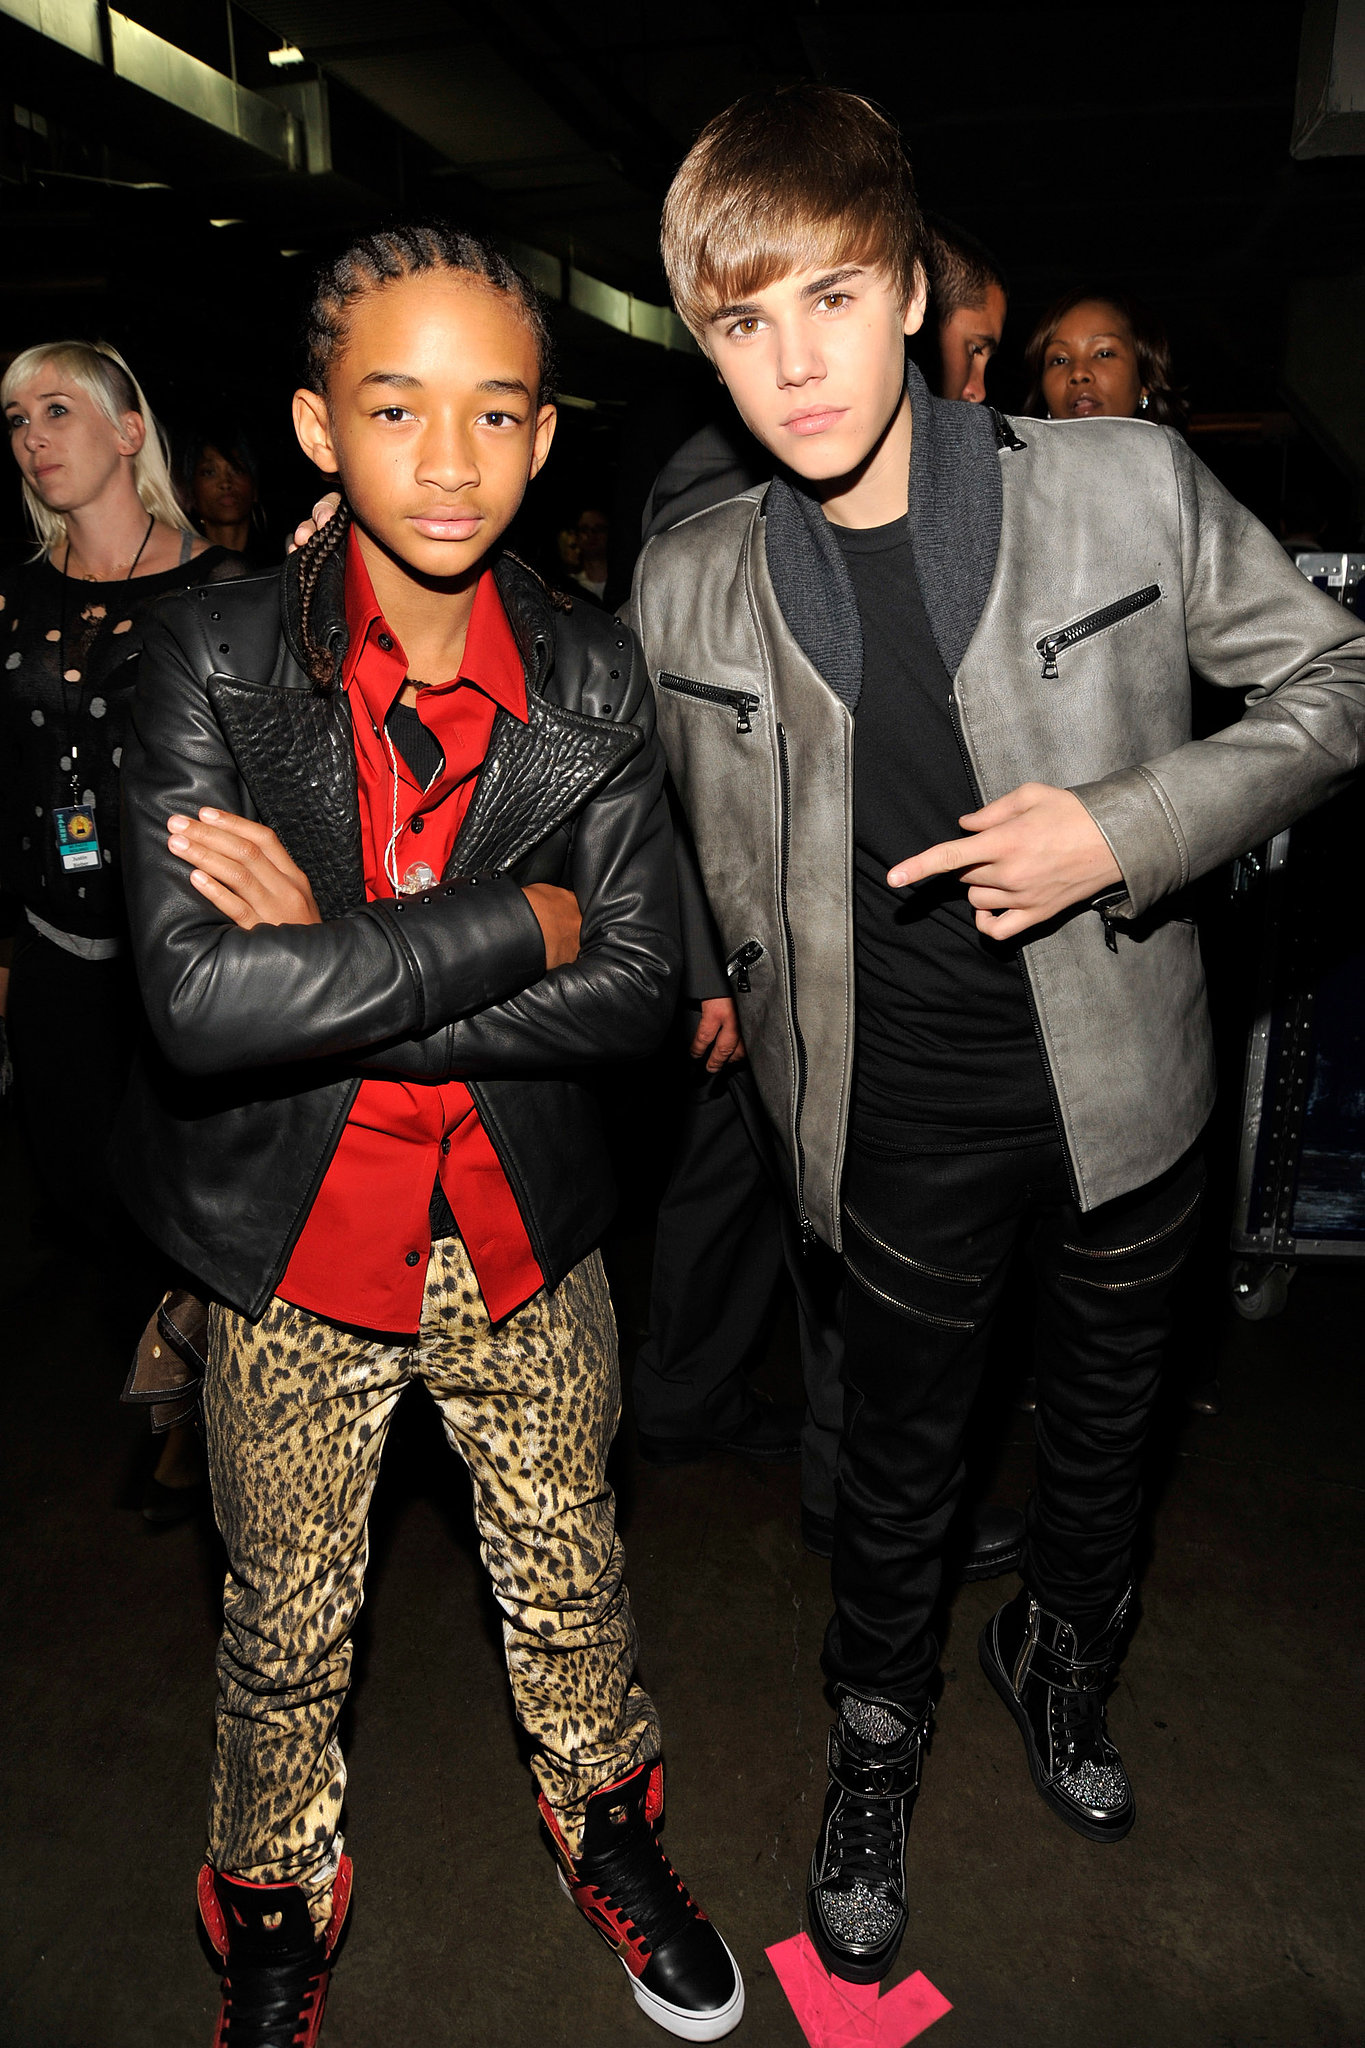 Justin Bieber and Jaden Smith are both talented young stars so it should come as no surprise that they both became fast friends. Justin has been supporting Jaden's music career, giving him a highly-coveted spot on his world tour last year.